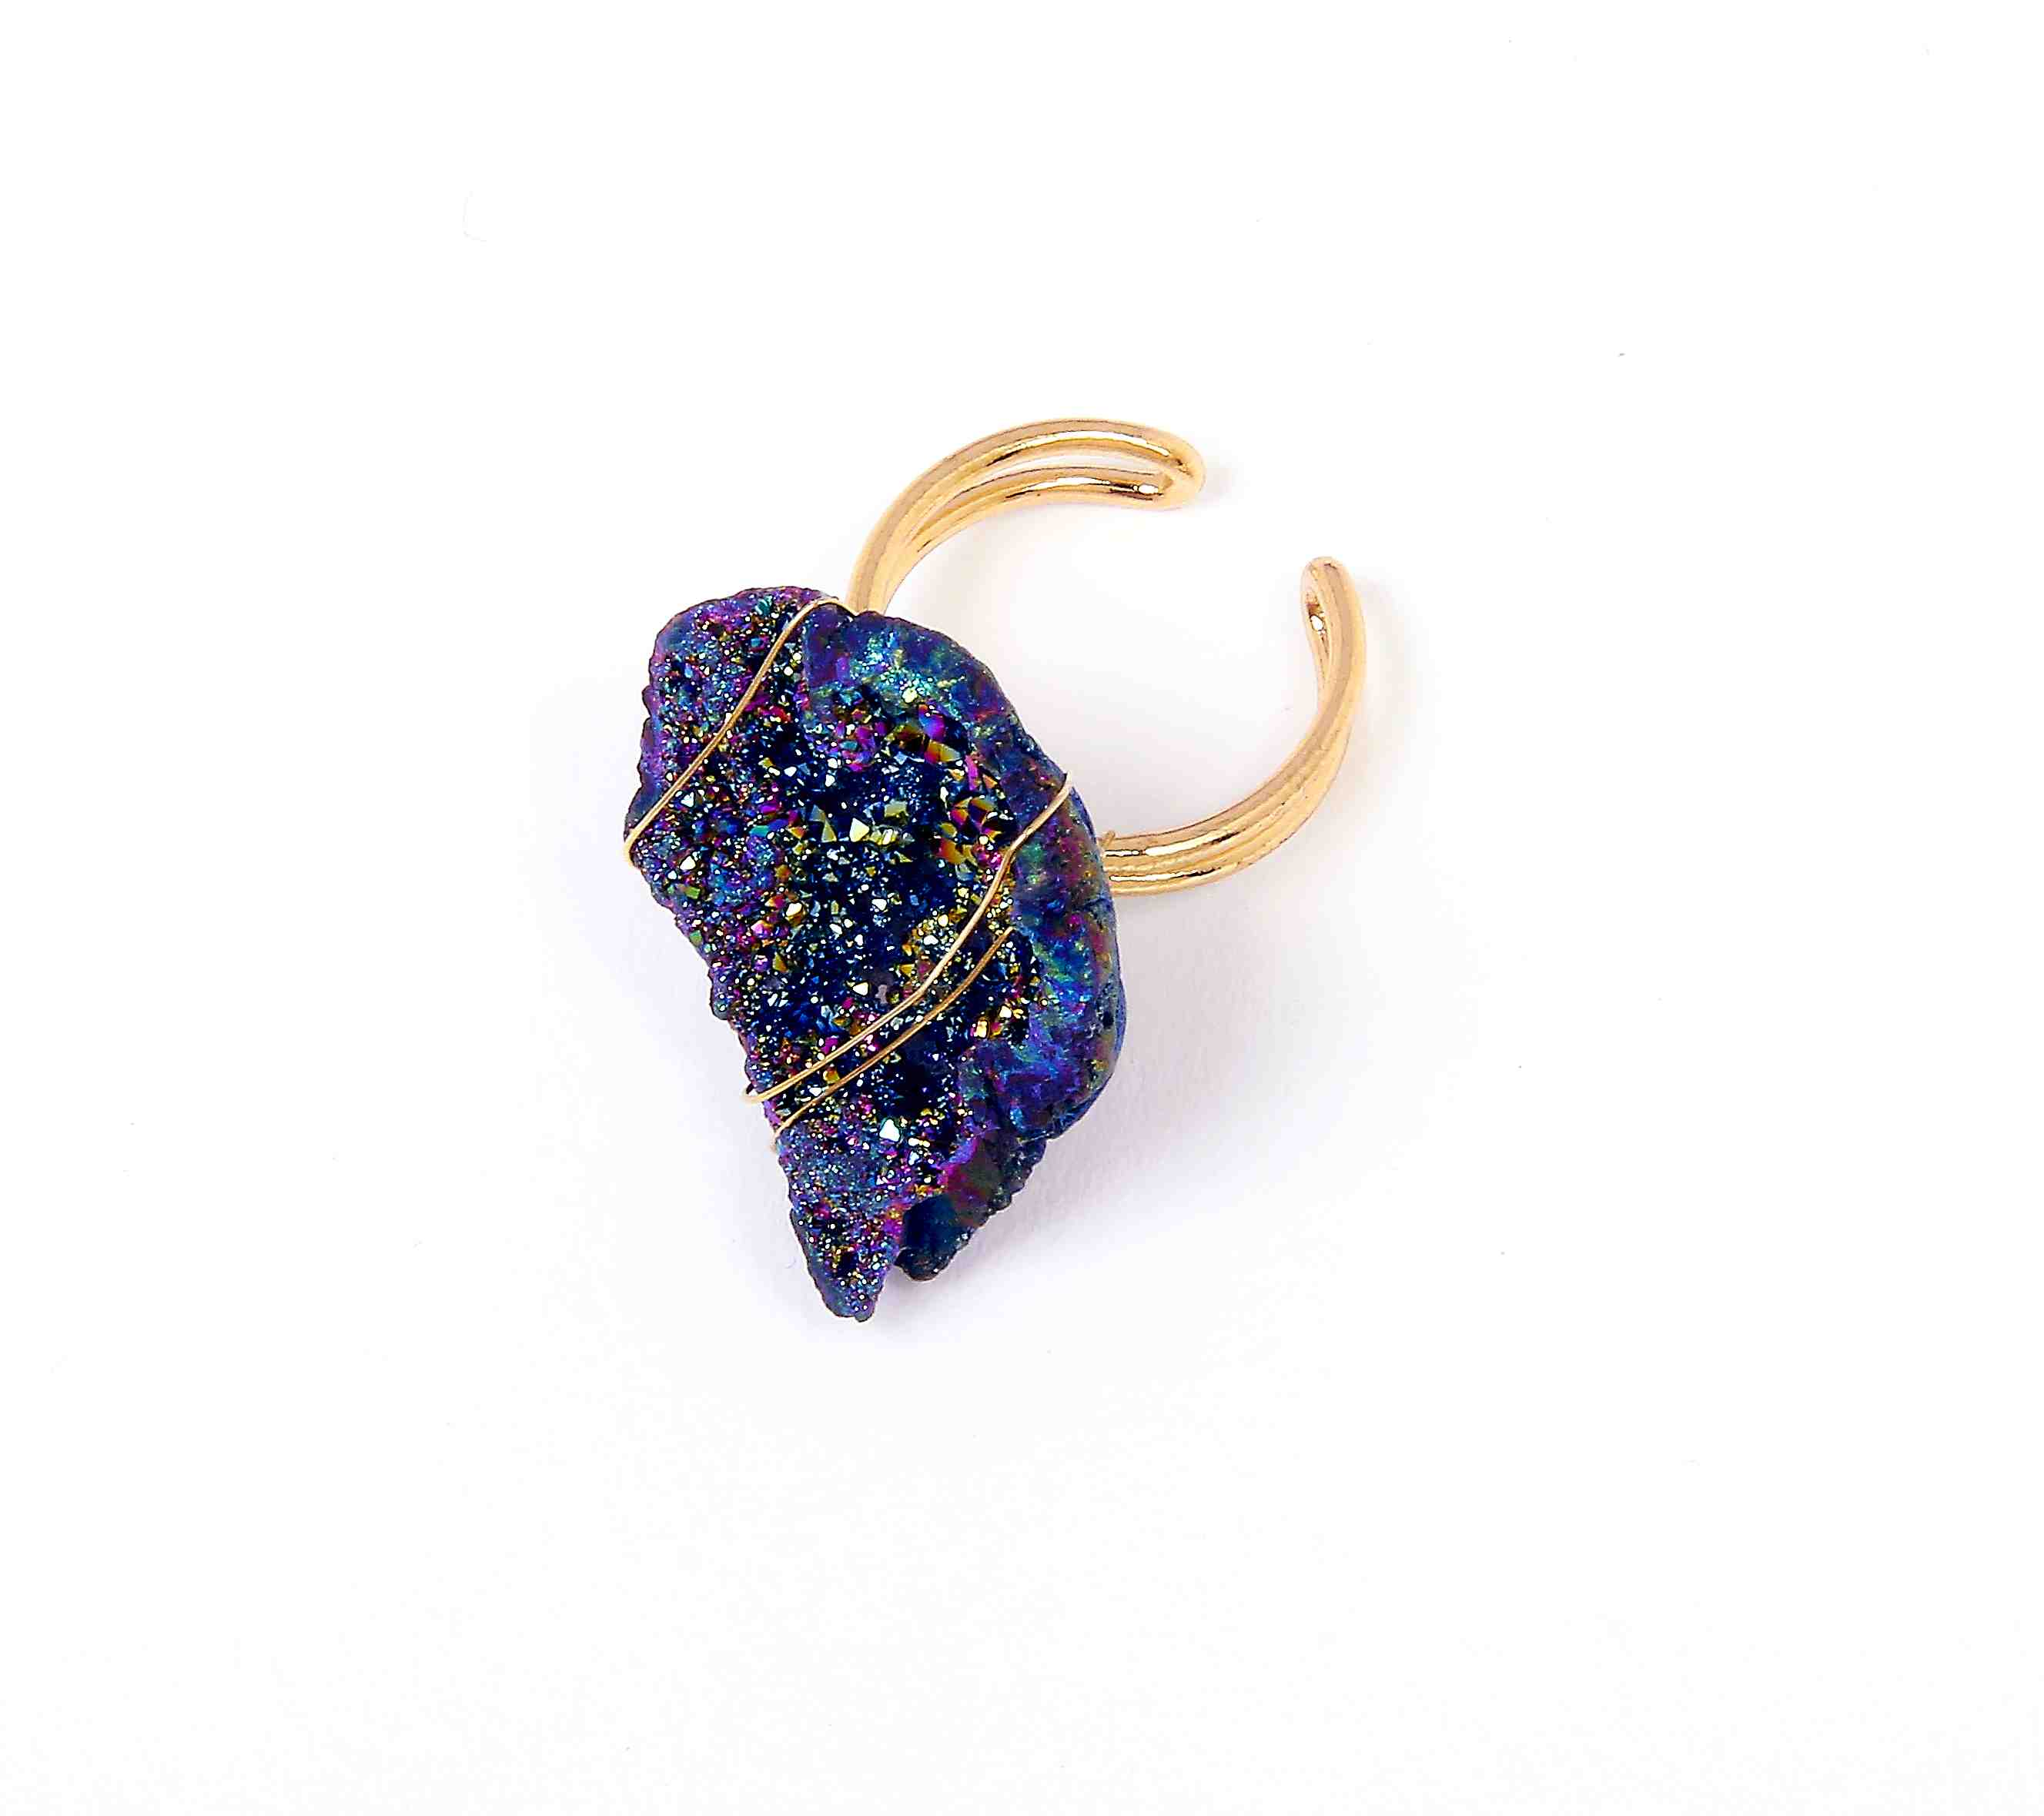 OK5684BL -  Ring Gold Adjustable With Natural Blue Druzy Stone Wrapped In Wire